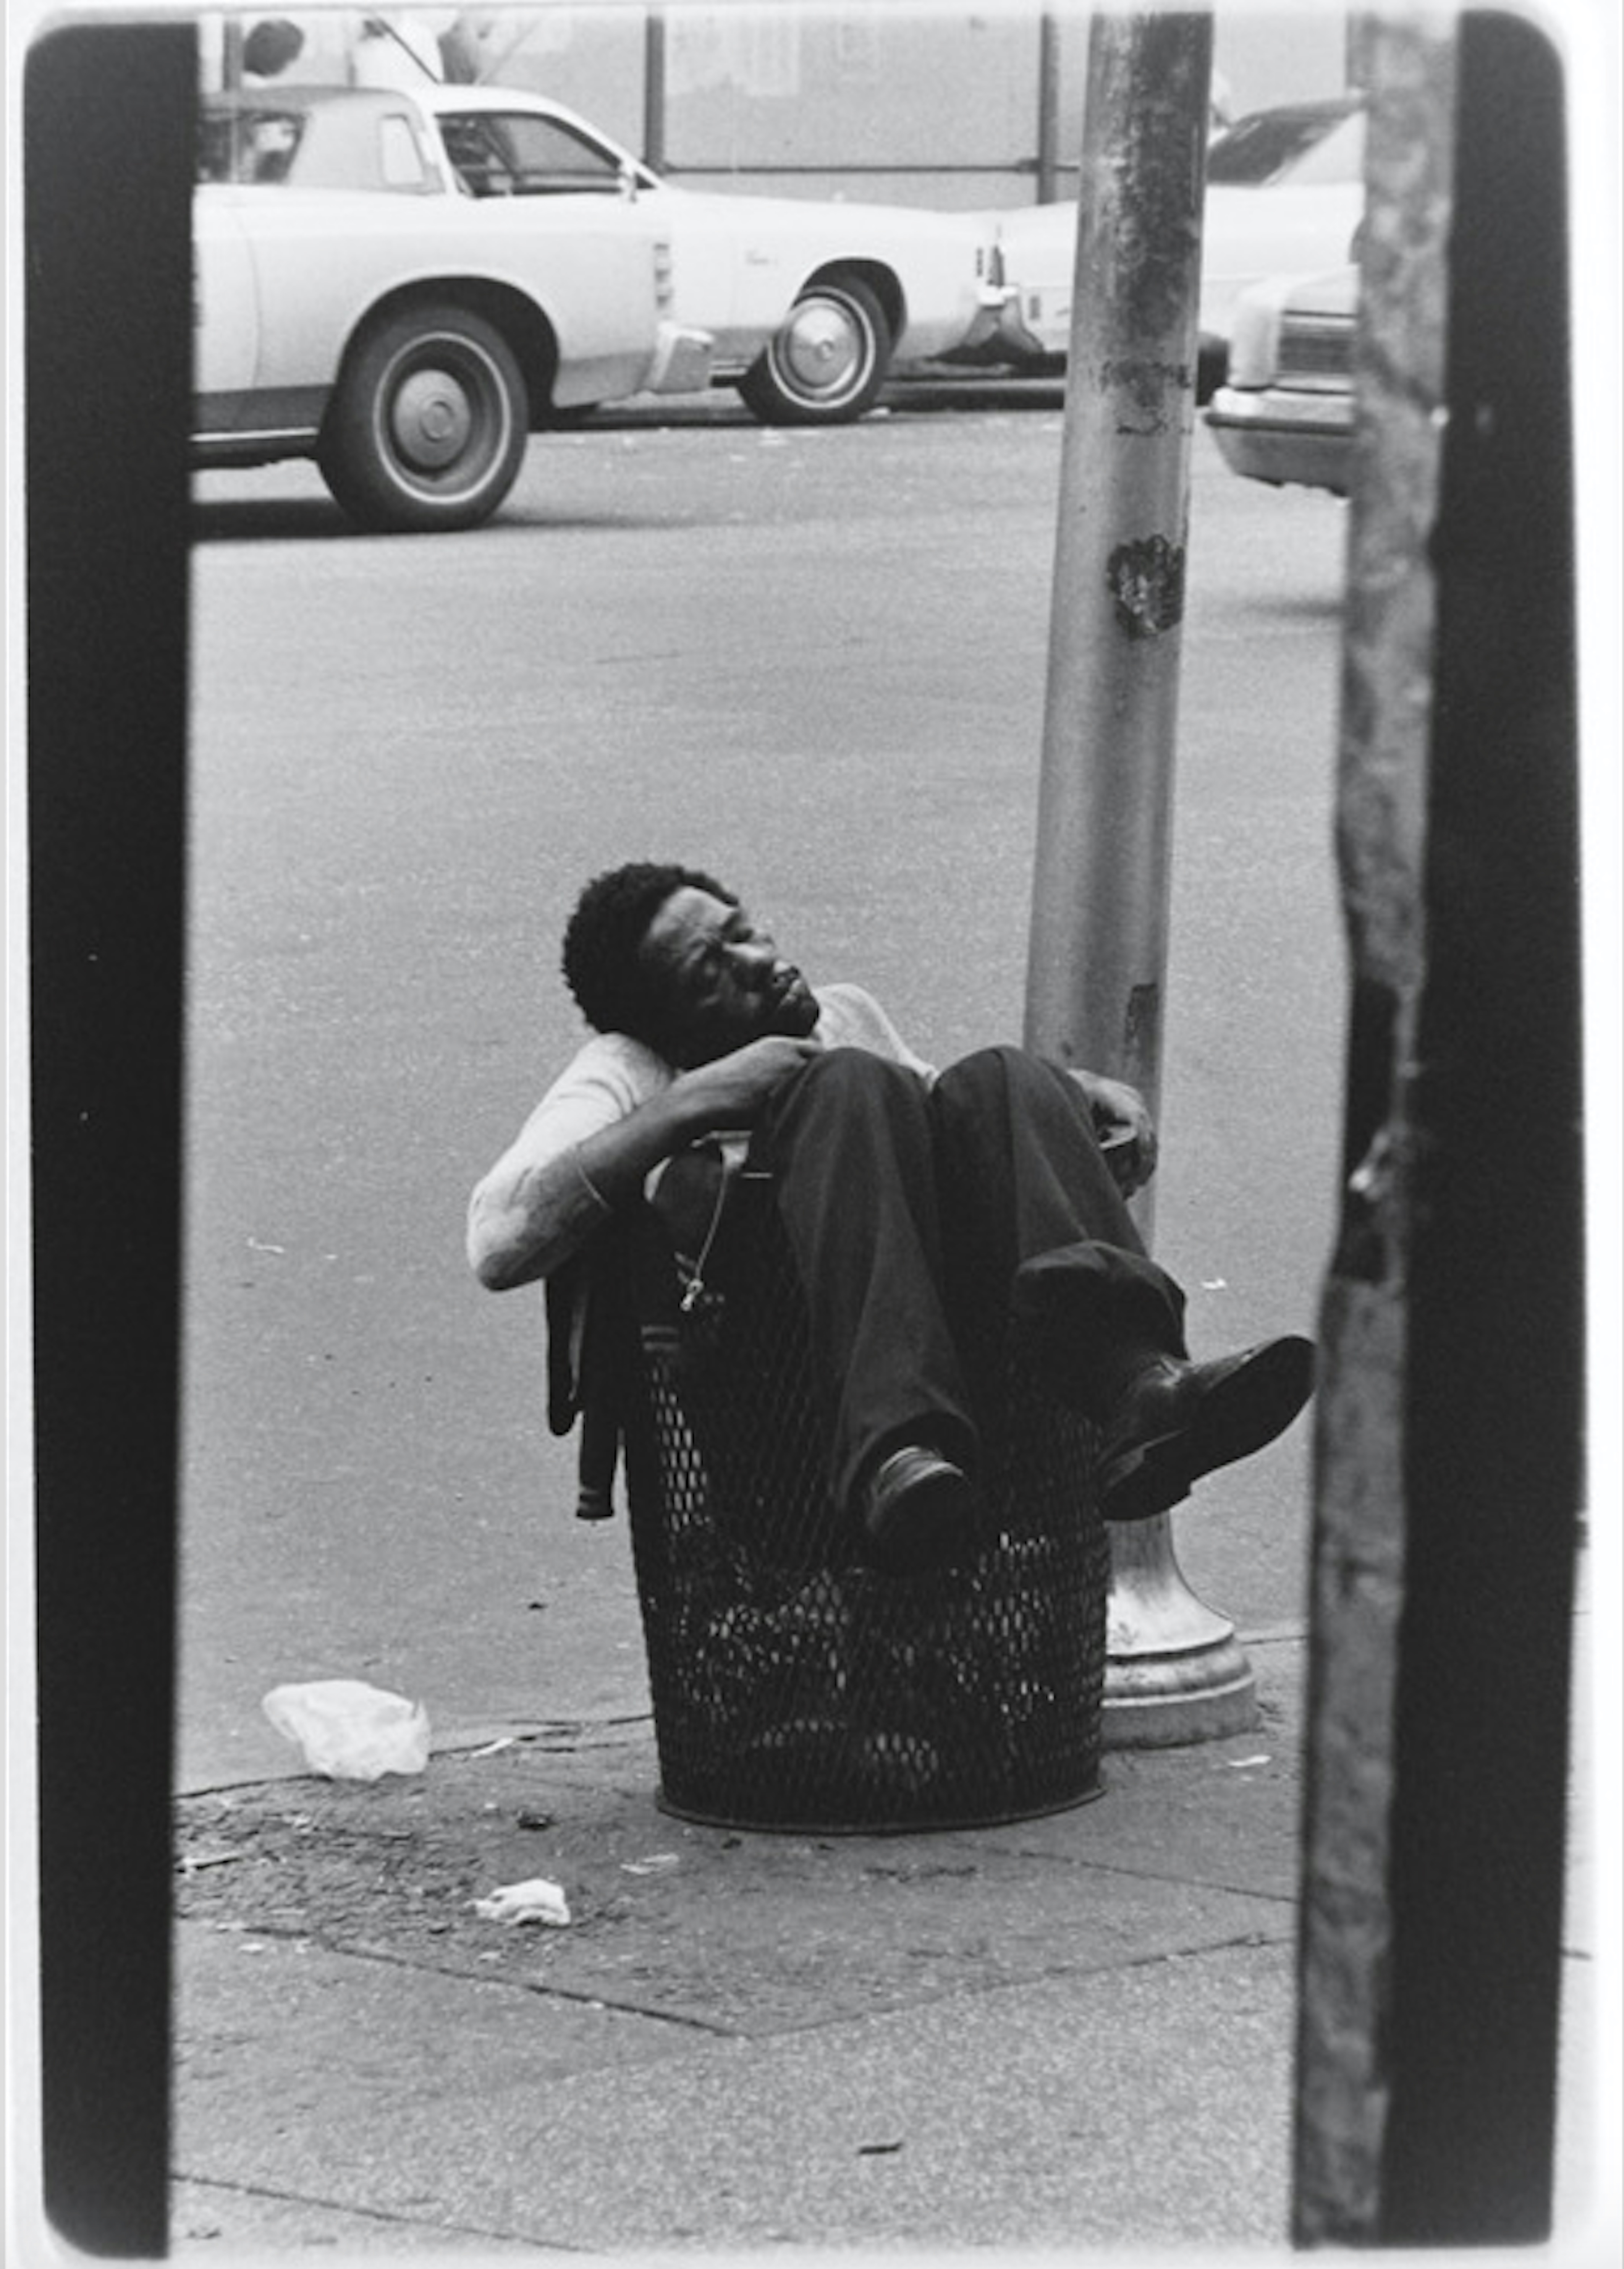 crooks  pimps and prostitutes  the dark side of 1970s new york